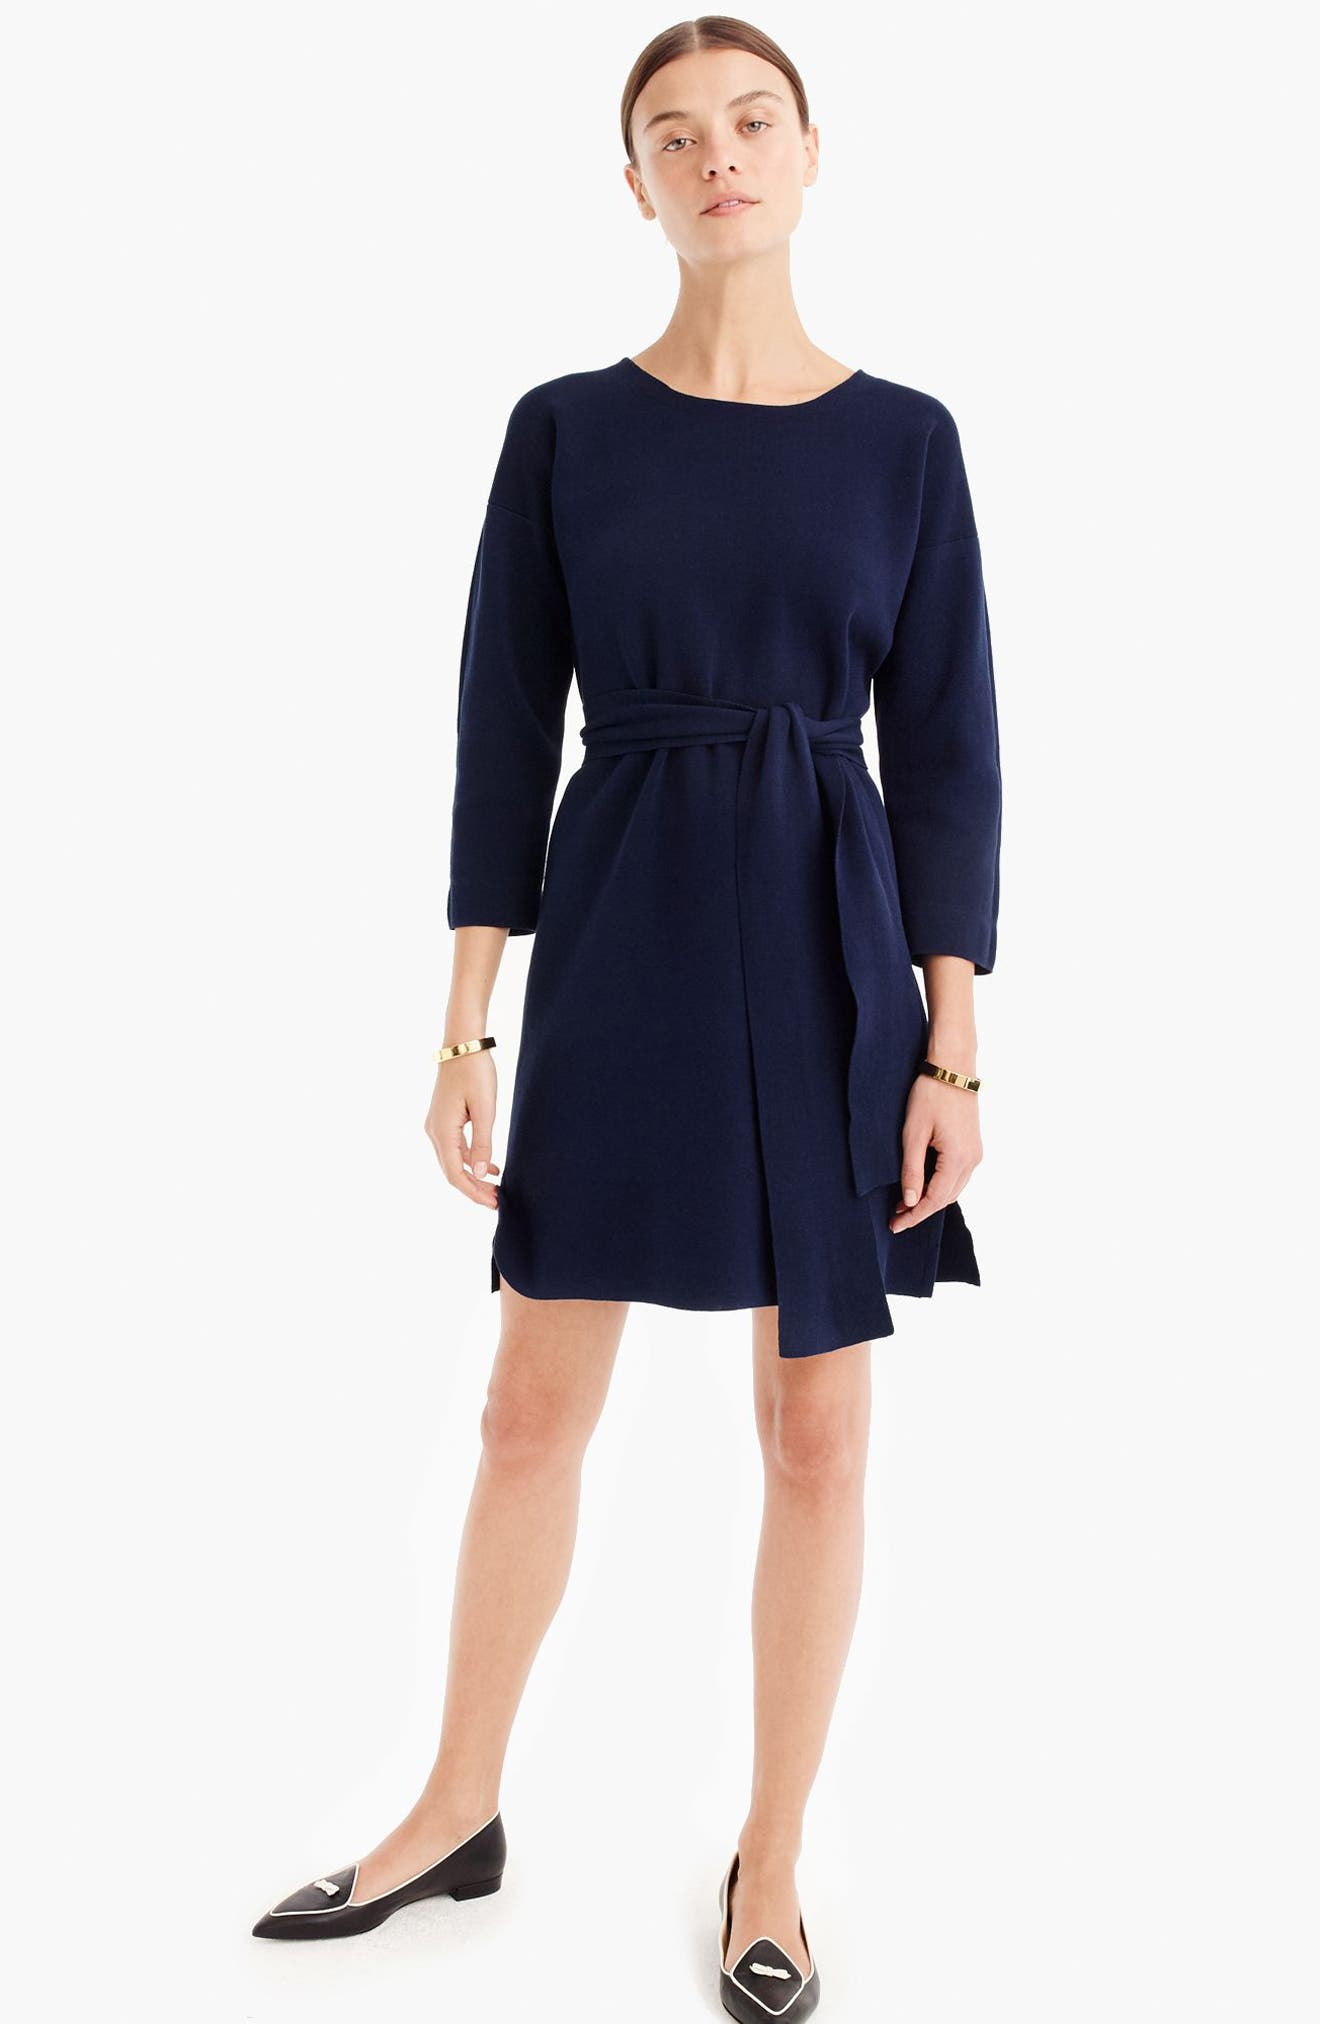 J.Crew Tie Waist Knit Dress,                             Alternate thumbnail 3, color,                             Indigo Sea